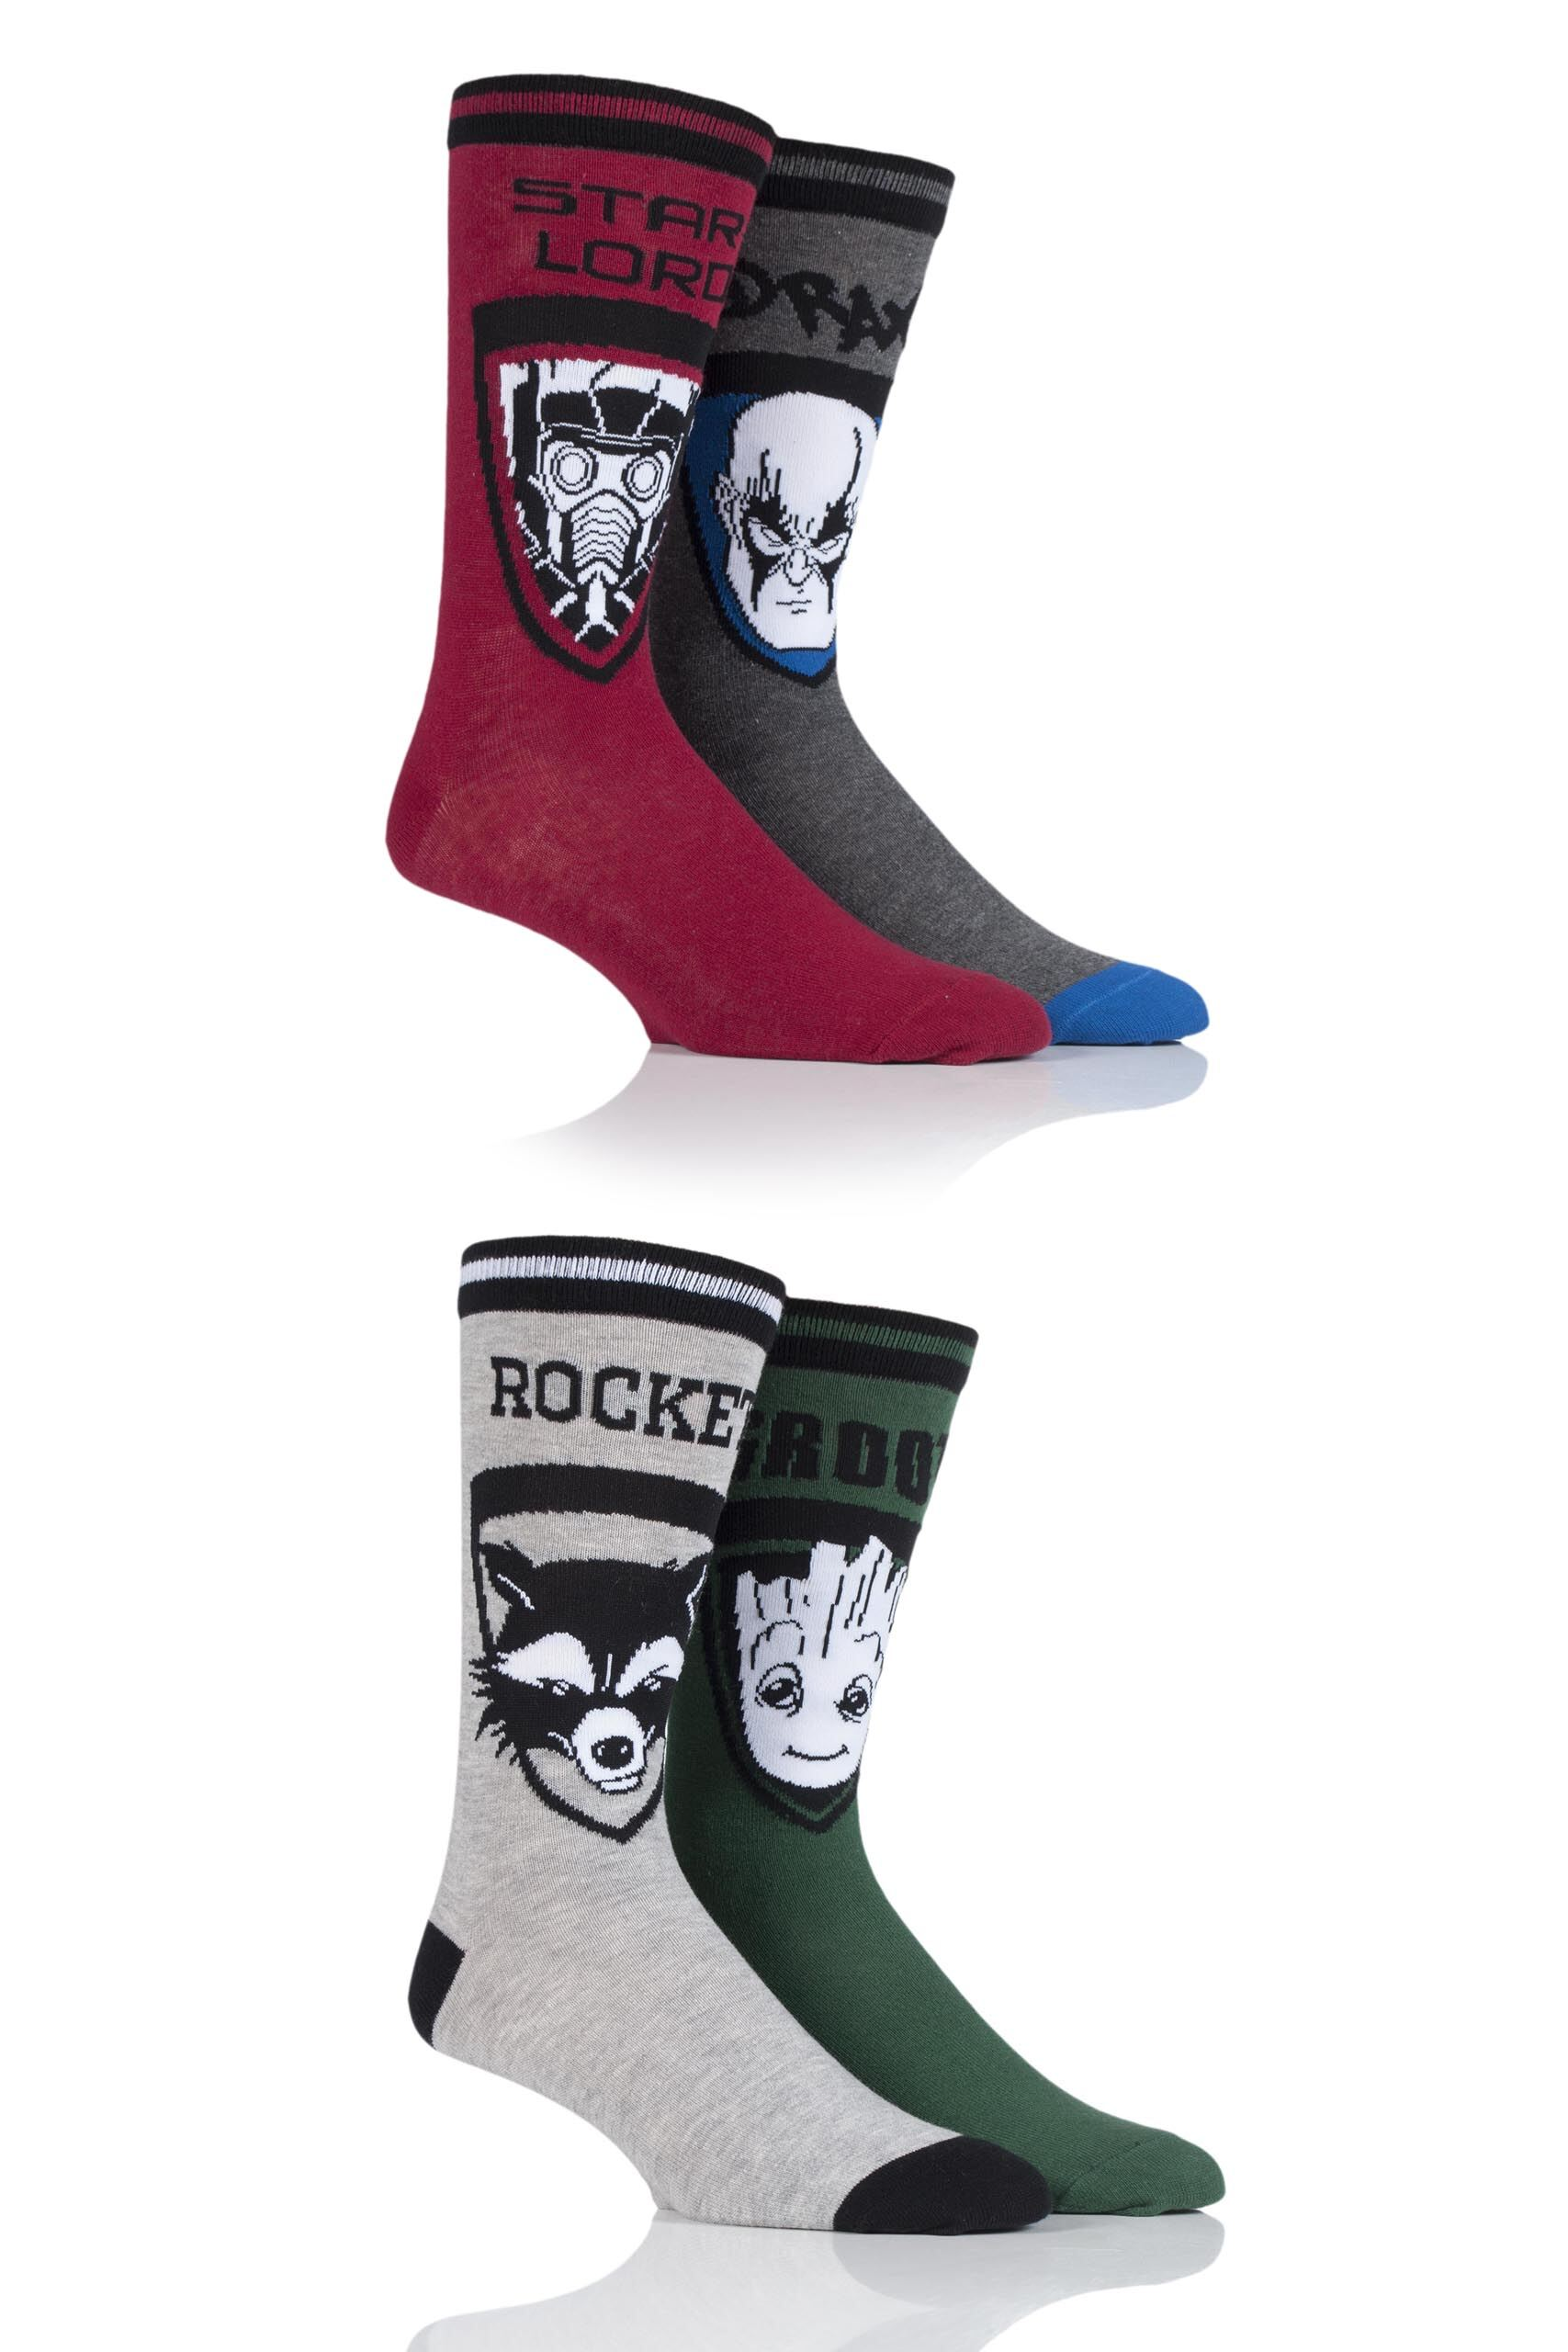 4 Pair Assorted Marvel Guardians of the Galaxy Groot, Rocket, Star-Lord and Drax Cotton Socks Men's 11-13 Mens - Film & TV Characters